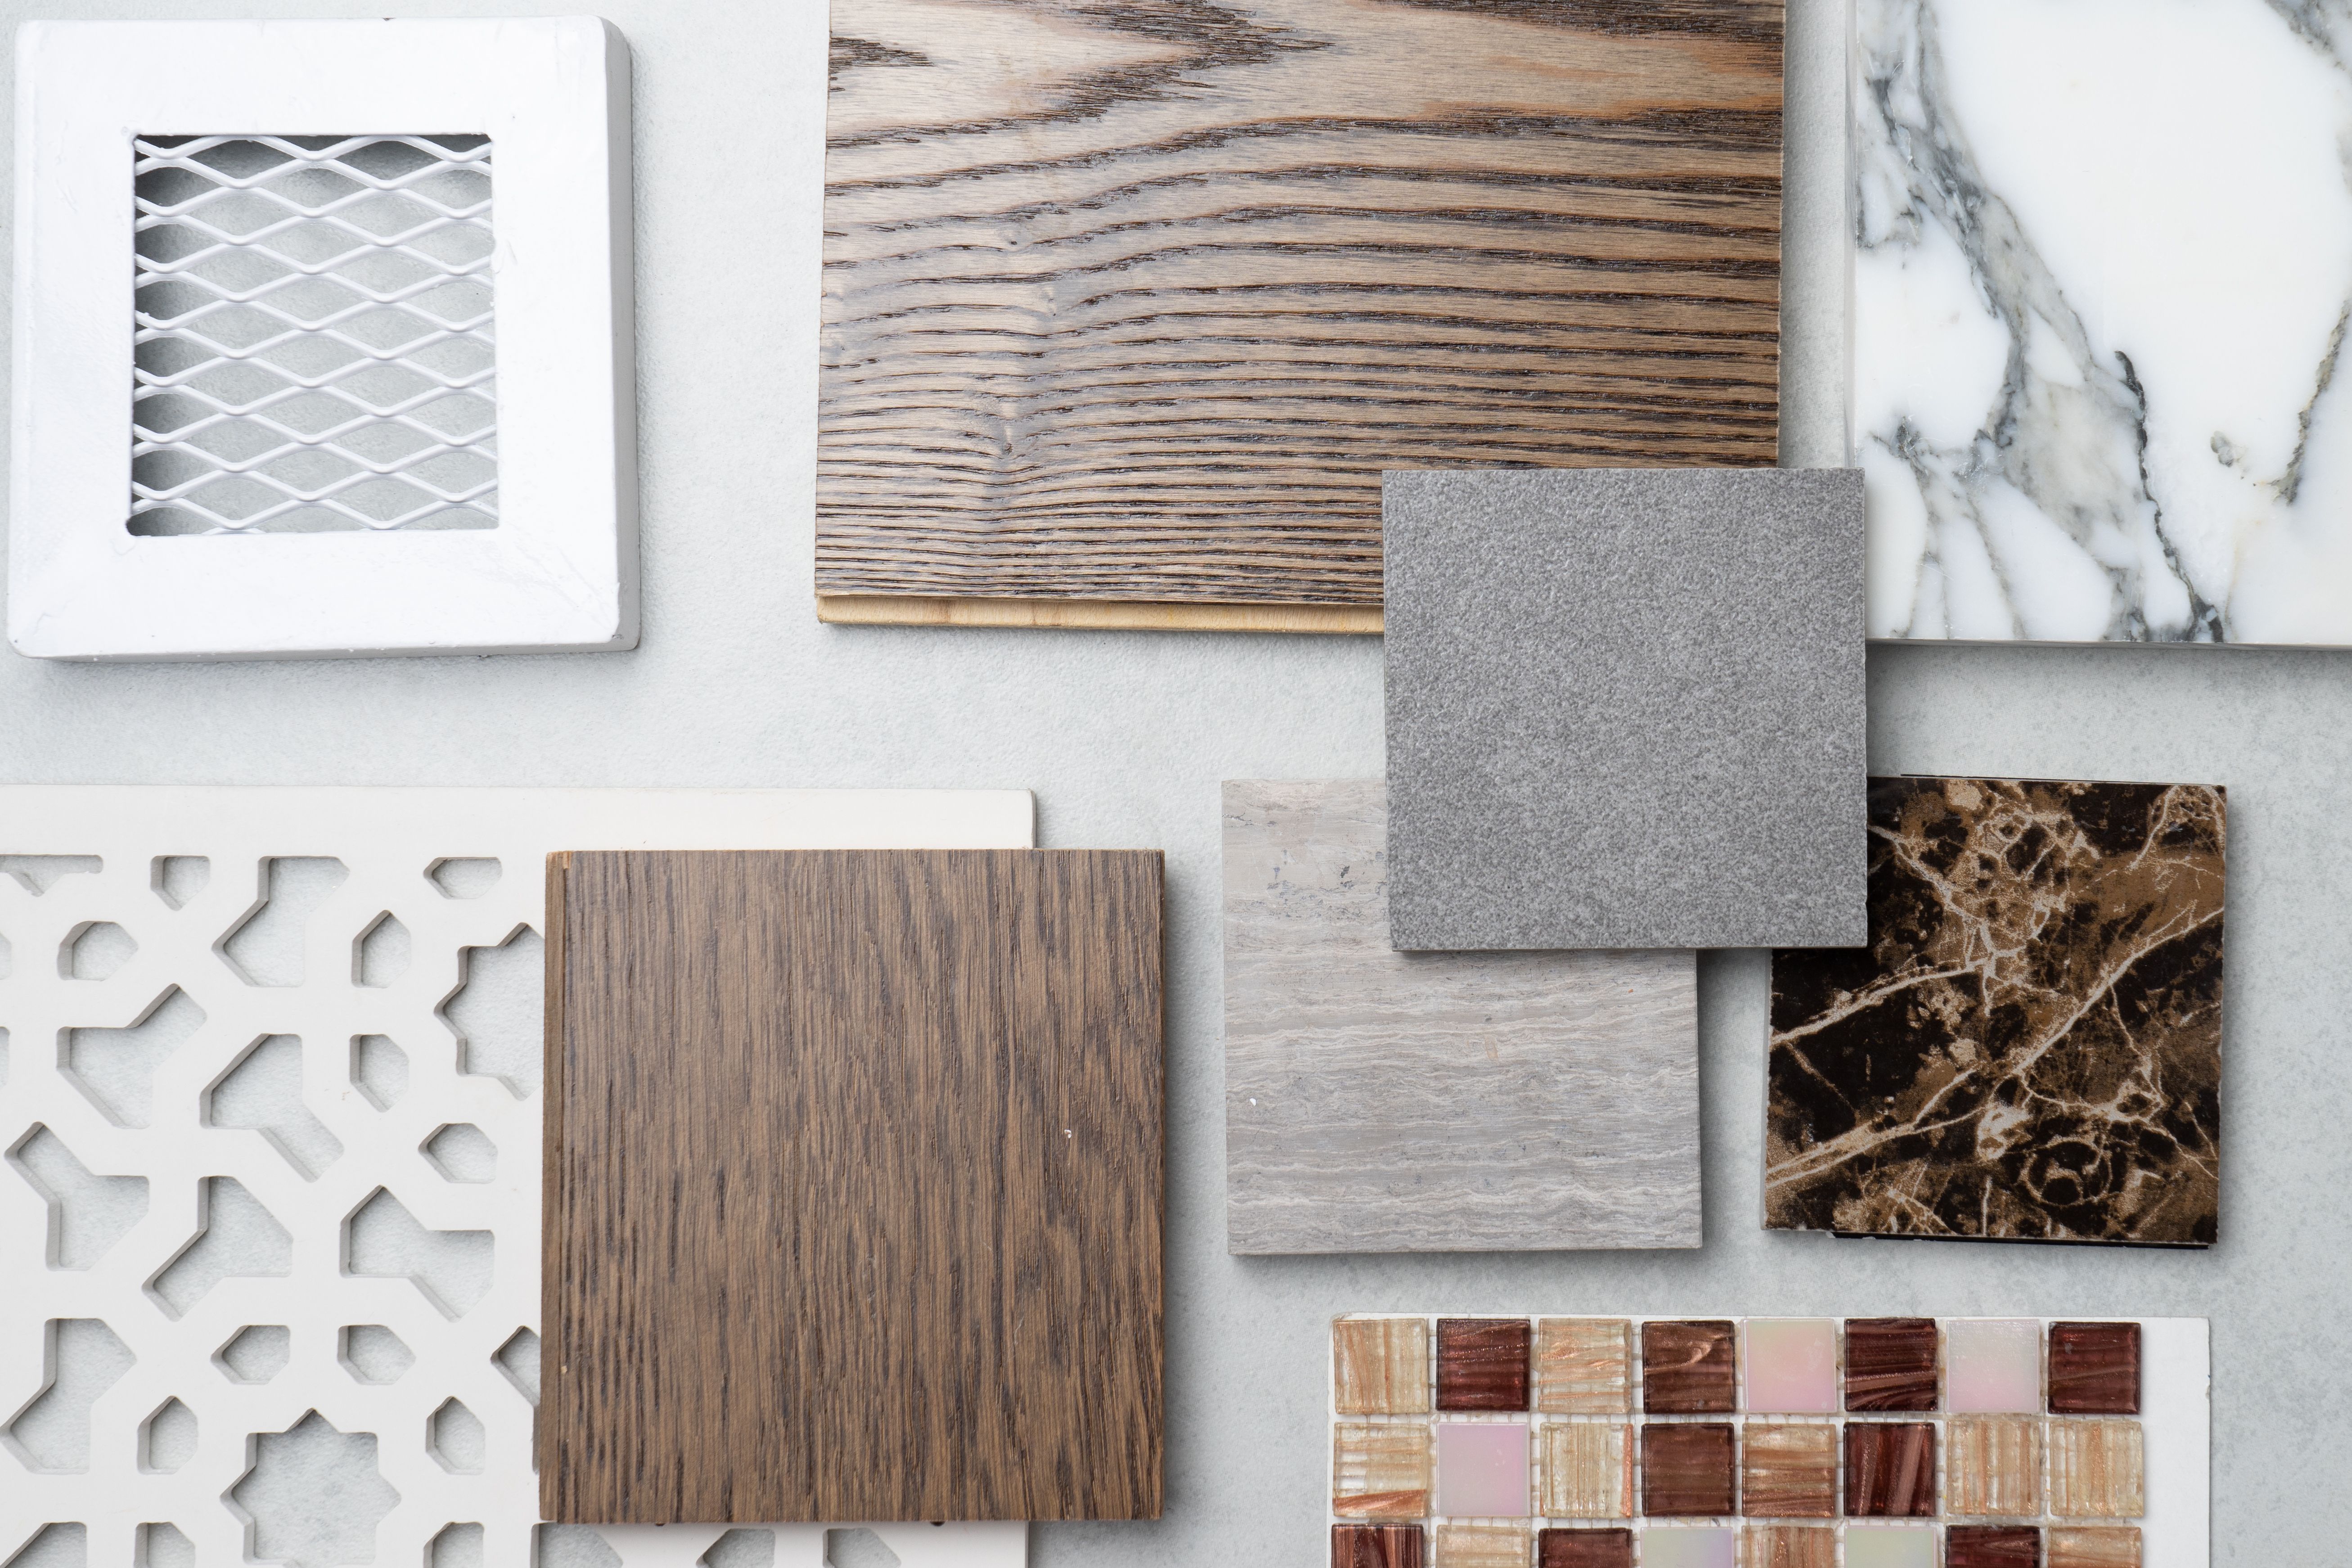 samples of material, wood , on concrete